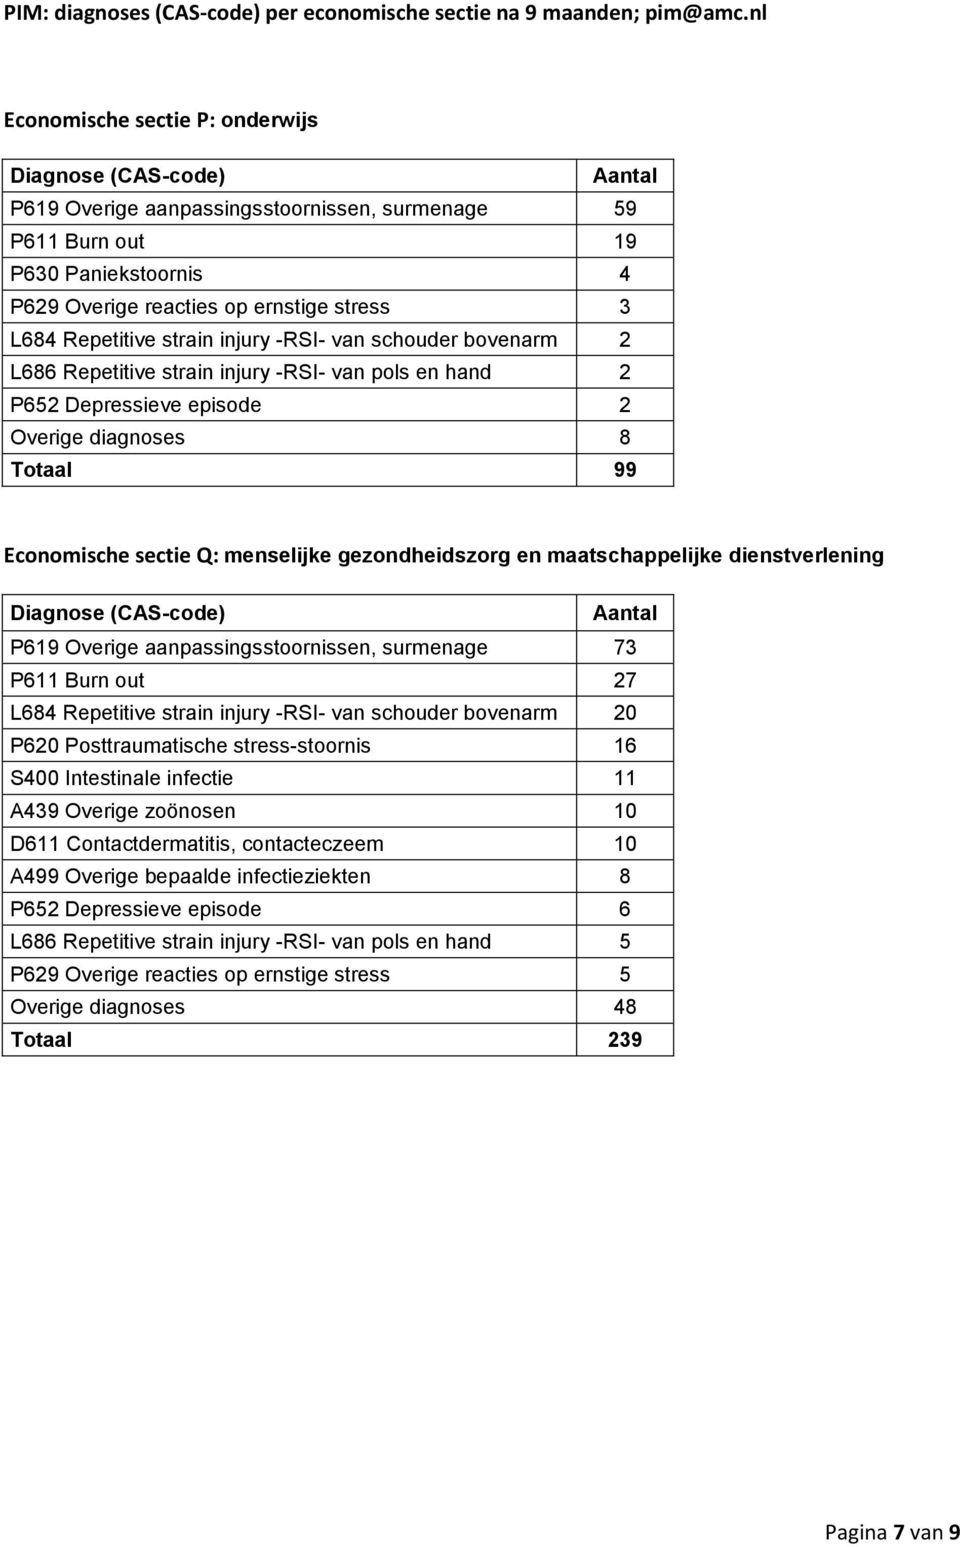 maatschappelijke dienstverlening P619 Overige aanpassingsstoornissen, surmenage 73 P611 Burn out 27 L684 Repetitive strain injury -RSI- van schouder bovenarm 20 P620 Posttraumatische stress-stoornis